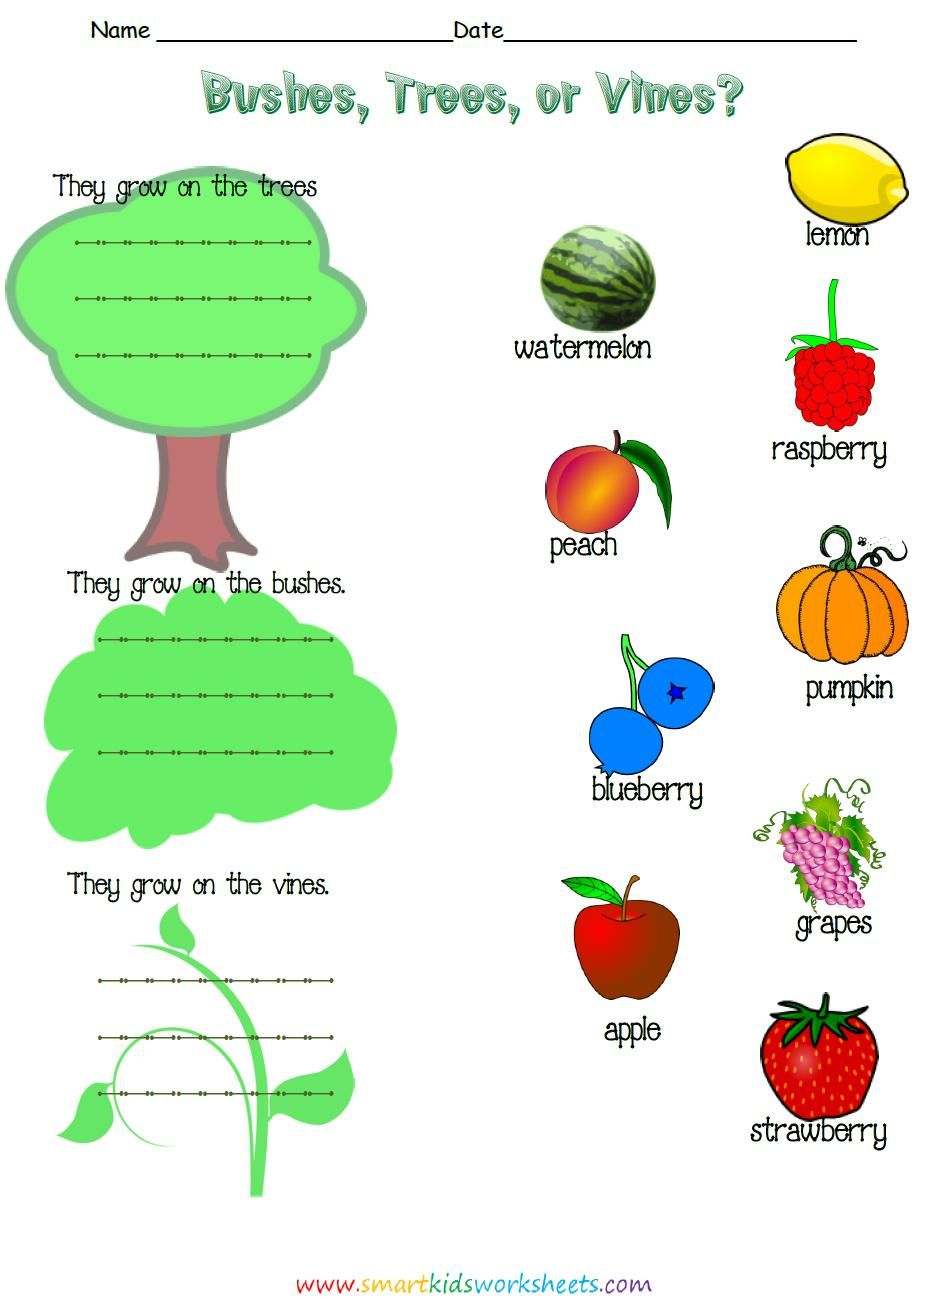 Workbooks living and nonliving worksheets for kindergarten : Learn about where different fruits and vegetables grow, trees ...